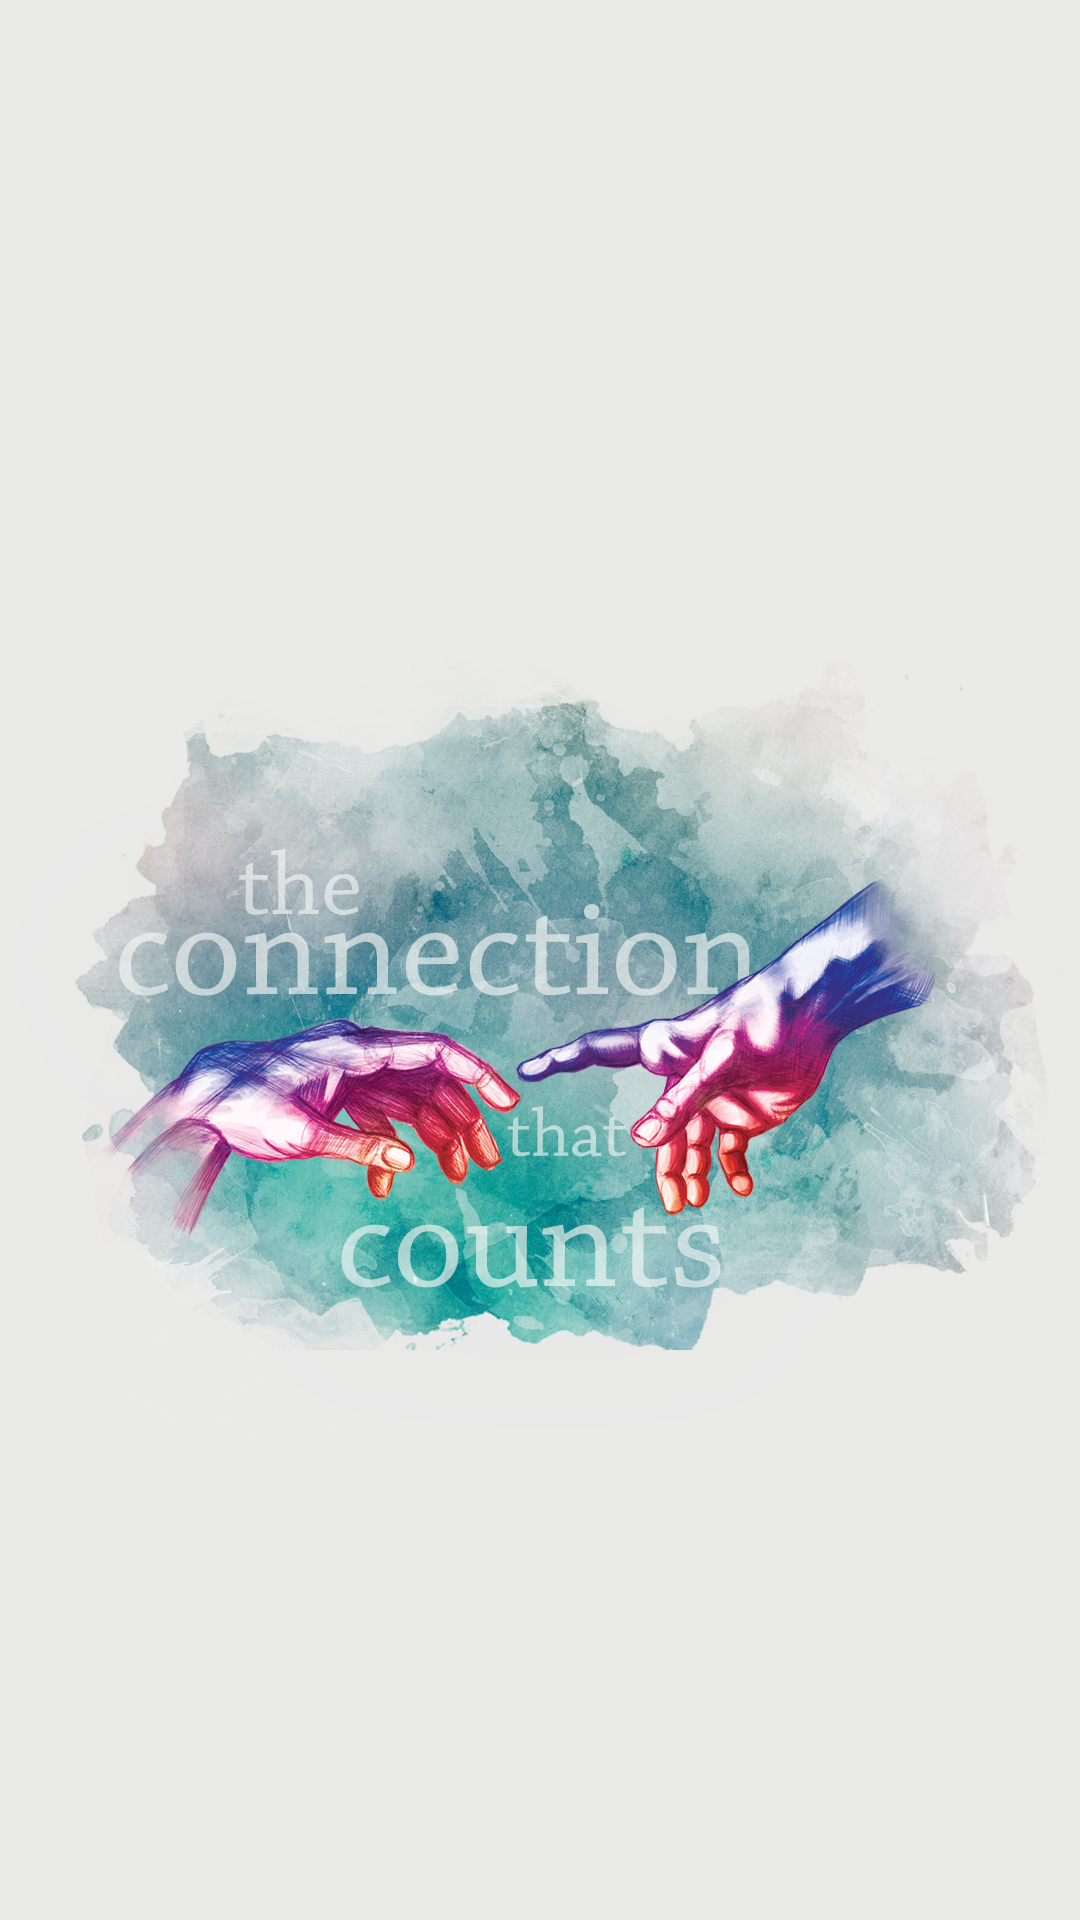 Wallpaper_Android_The_Connection_That_Counts.jpg